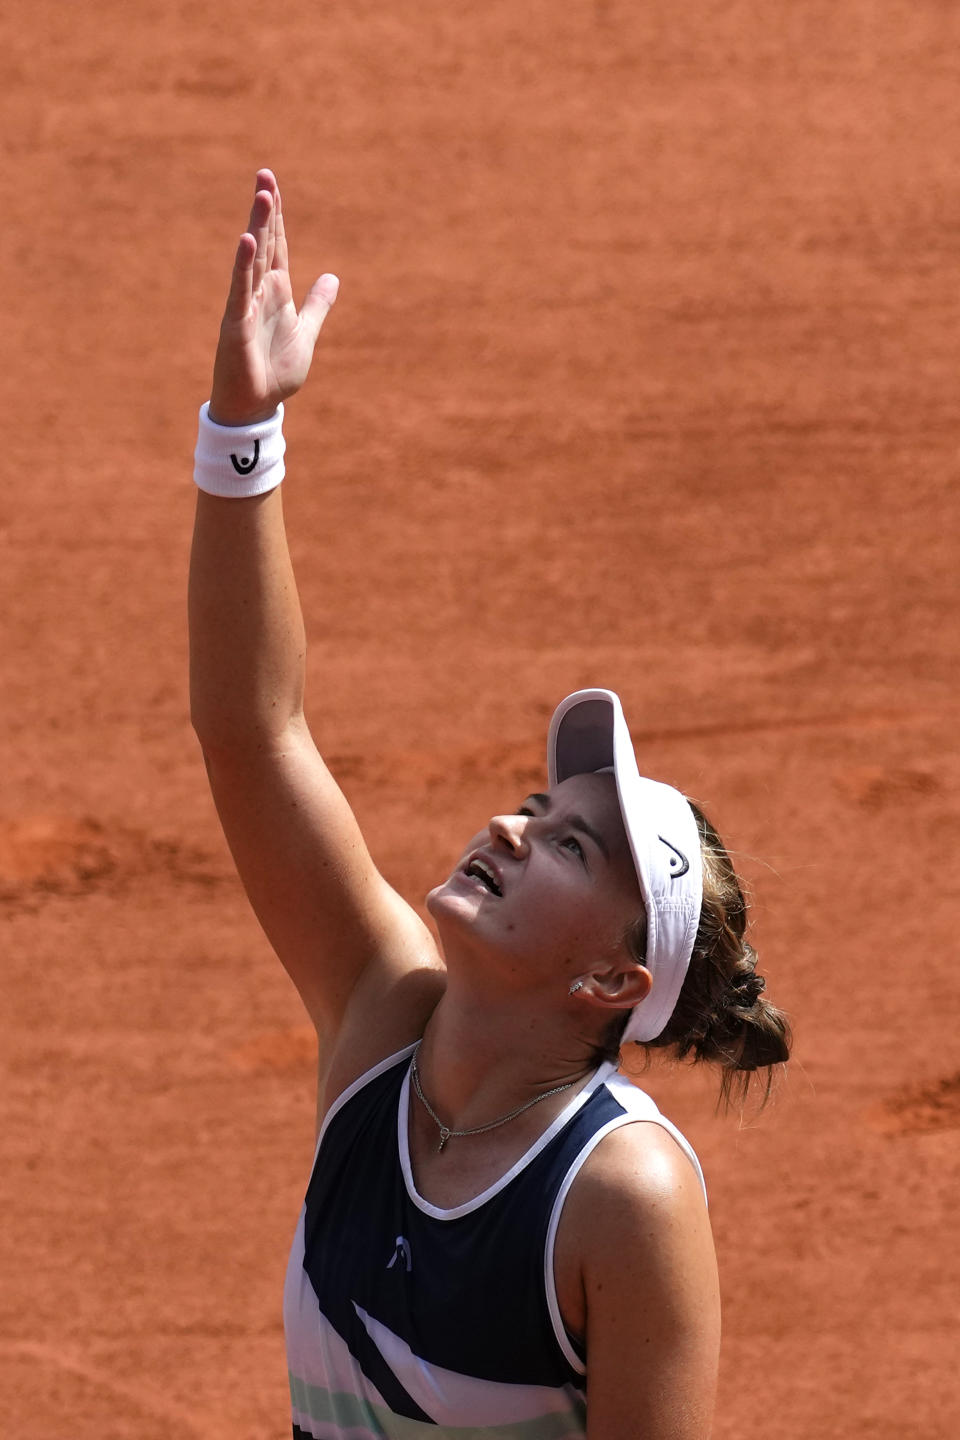 Czech Republic's Barbora Krejcikova celebrates after defeating Russia's Anastasia Pavlyuchenkova during their final match of the French Open tennis tournament at the Roland Garros stadium Saturday, June 12, 2021 in Paris. The unseeded Czech player defeated Anastasia Pavlyuchenkova 6-1, 2-6, 6-4 in the final. (AP Photo/Christophe Ena)